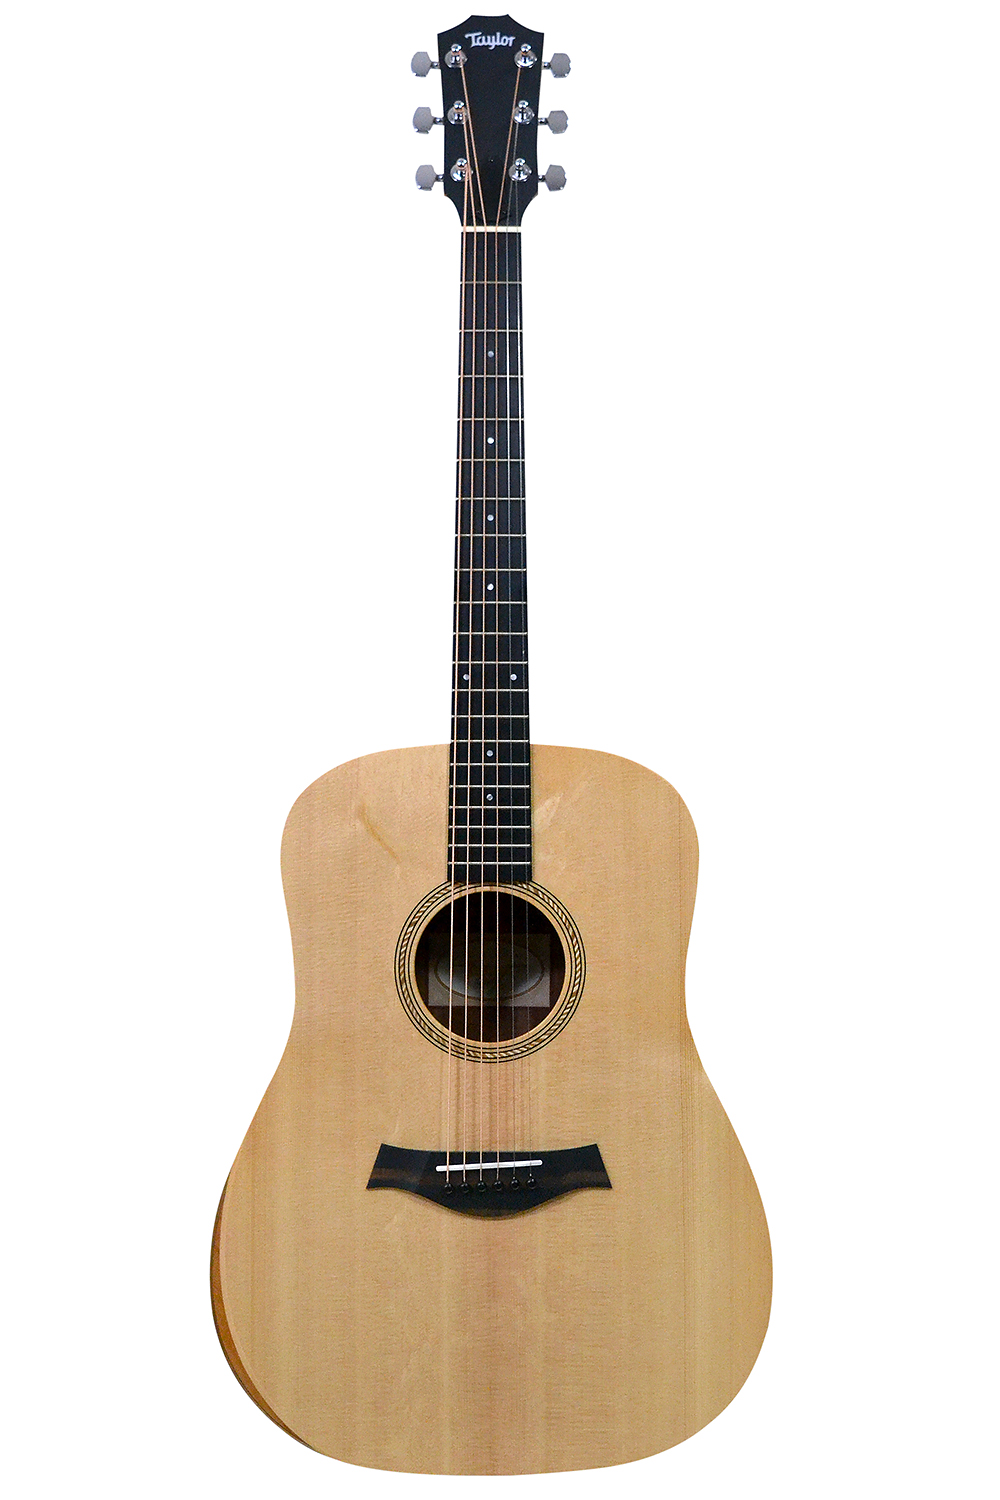 Taylor Academy 10 Dreadnought 295991